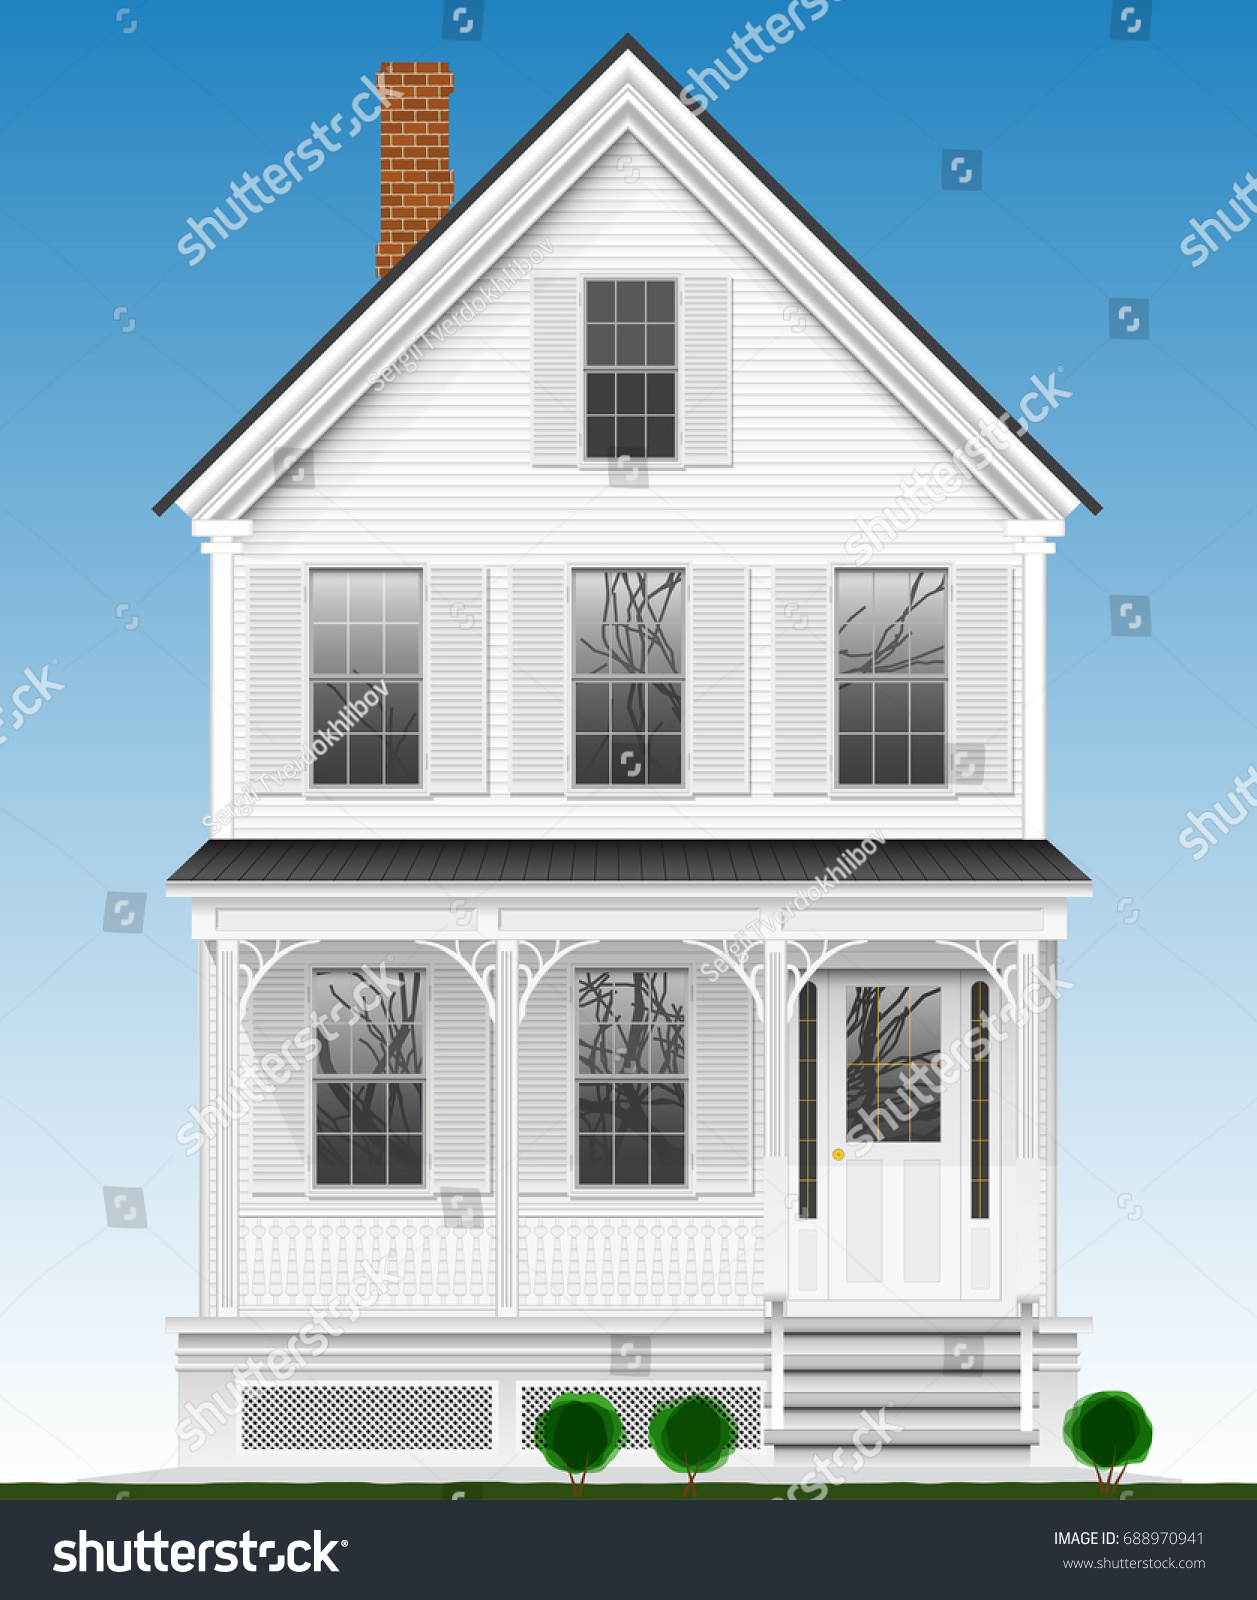 Typical classic american house made wood stock vector for Classic american house